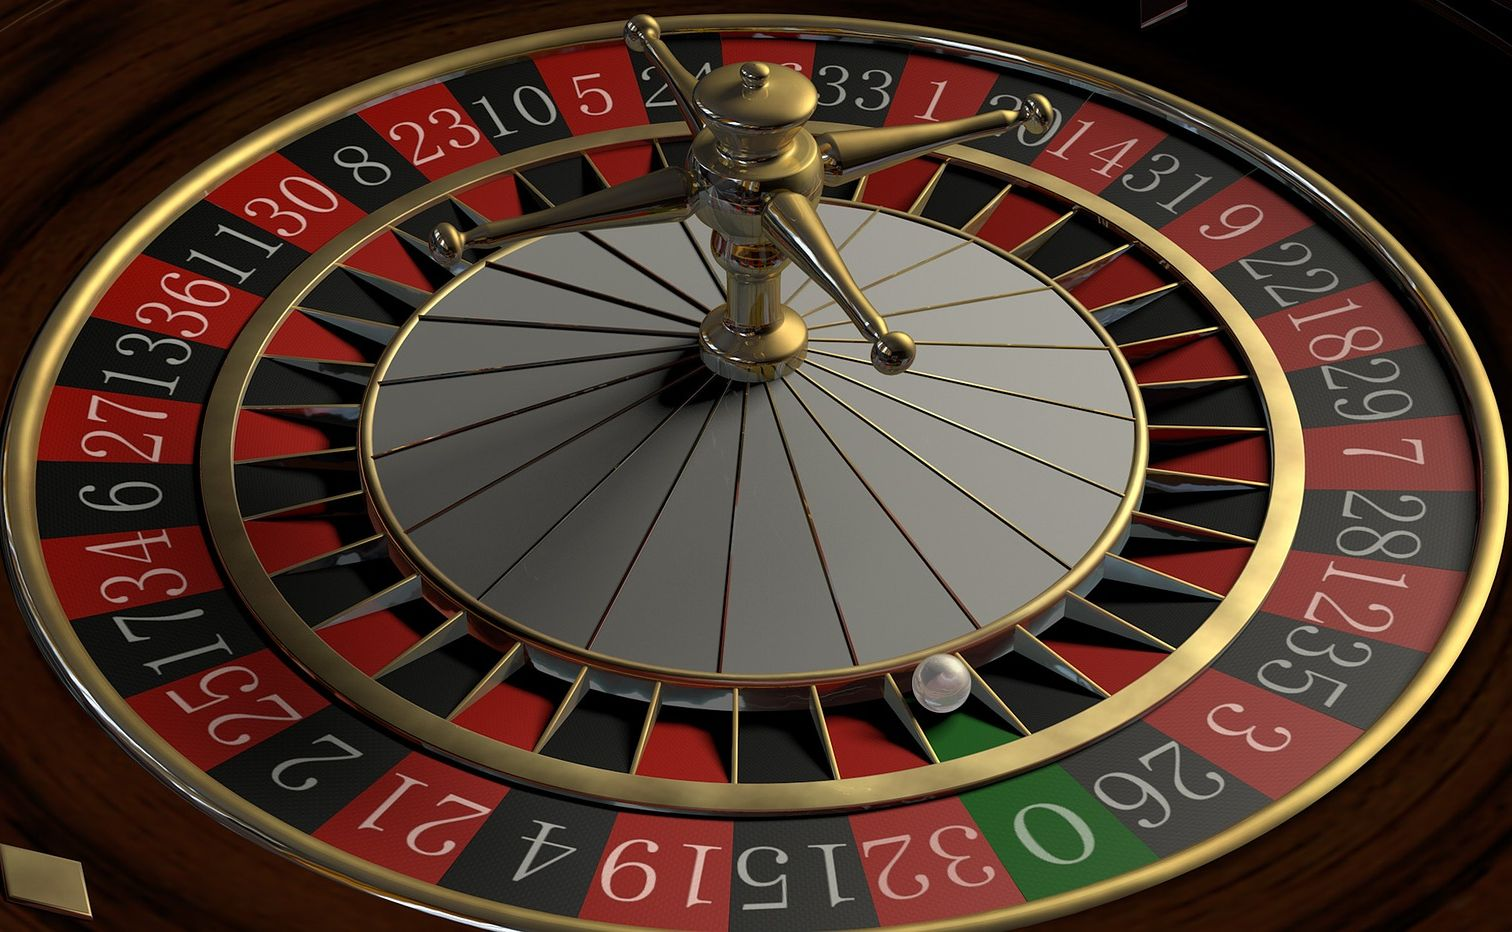 la technique du rouge et noir à la roulette